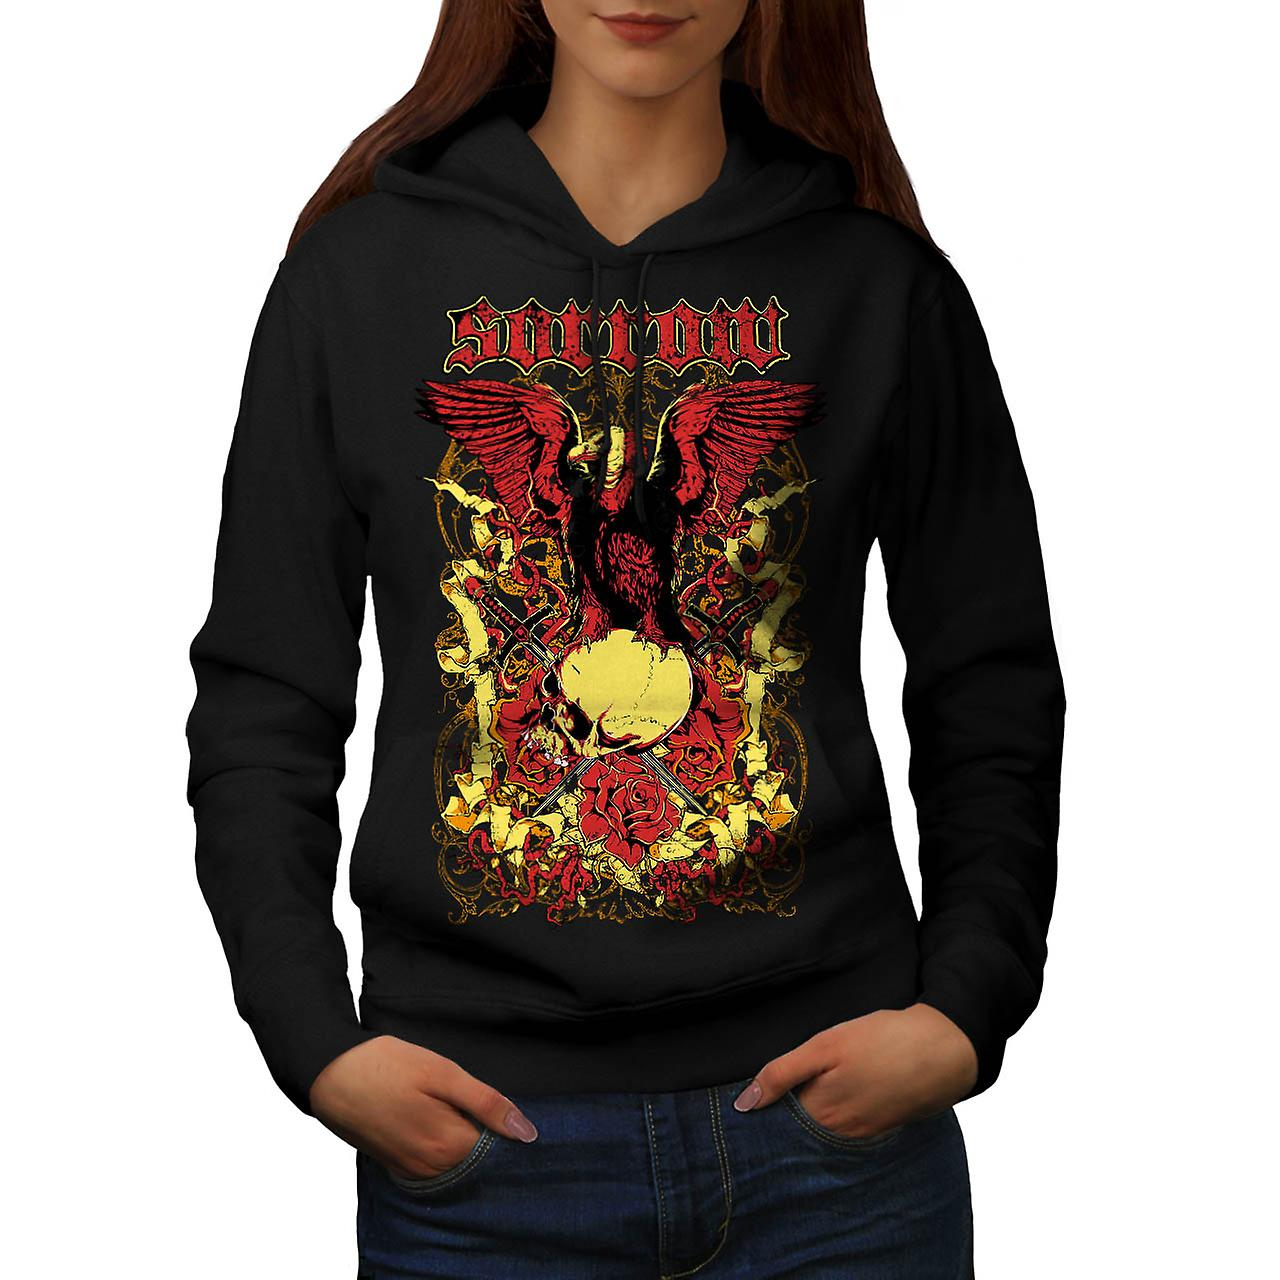 Sorrow Eagle Rose Skull Grave Yard Women Black Hoodie | Wellcoda